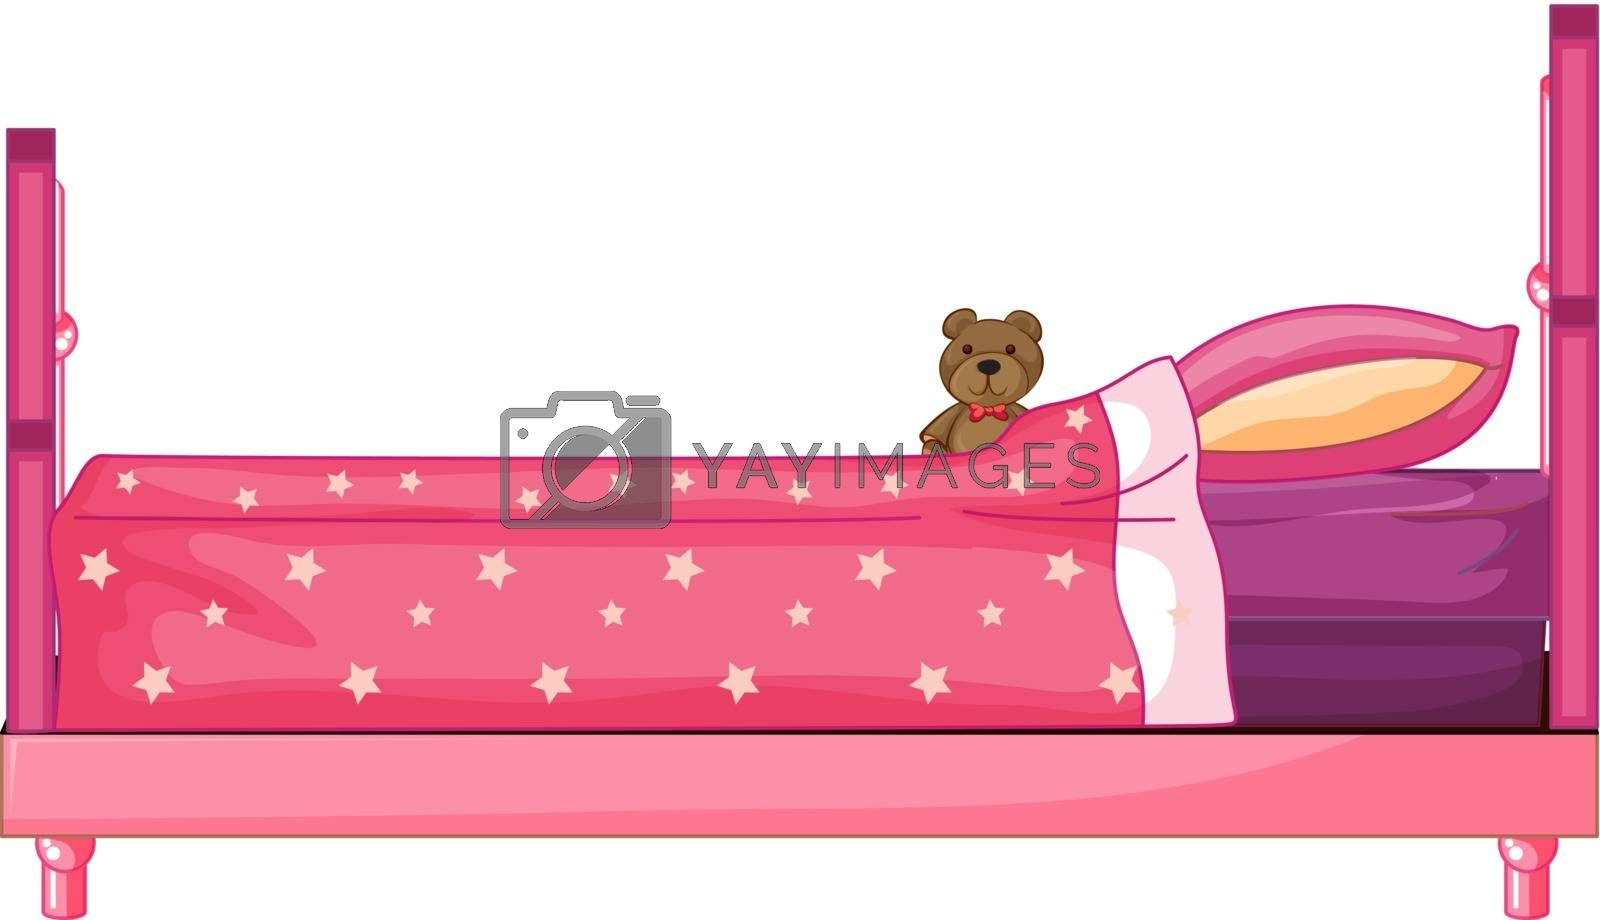 Illustration of a pink bed on a white background